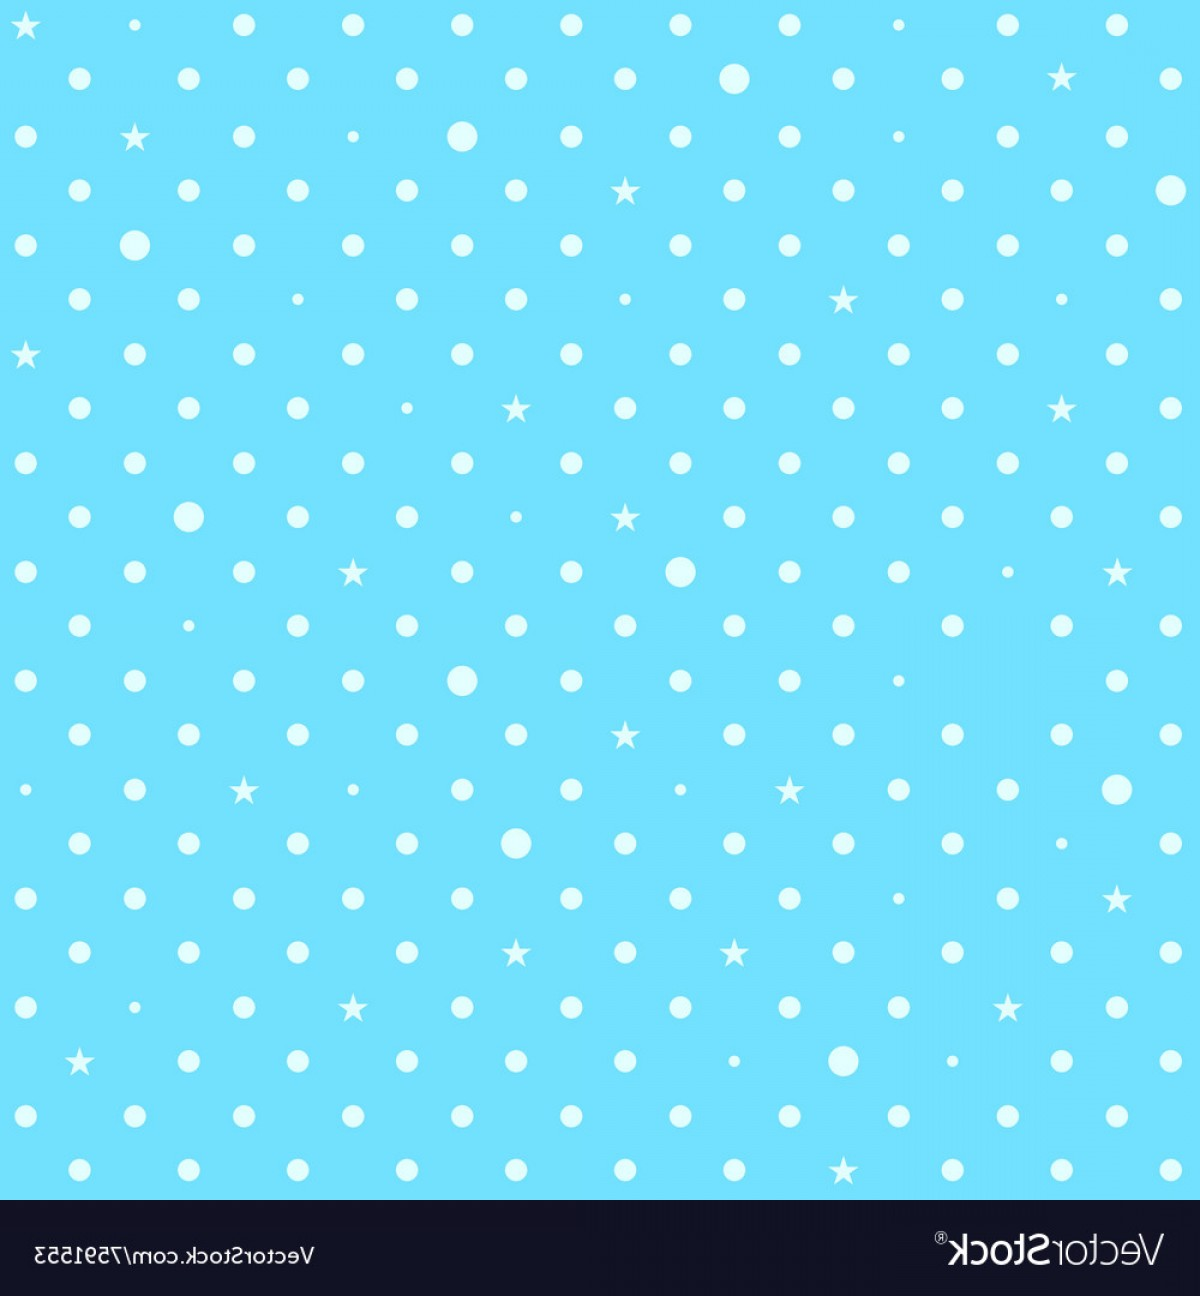 Blue With White Background Vector: Sky Blue White Star Polka Dots Background Vector